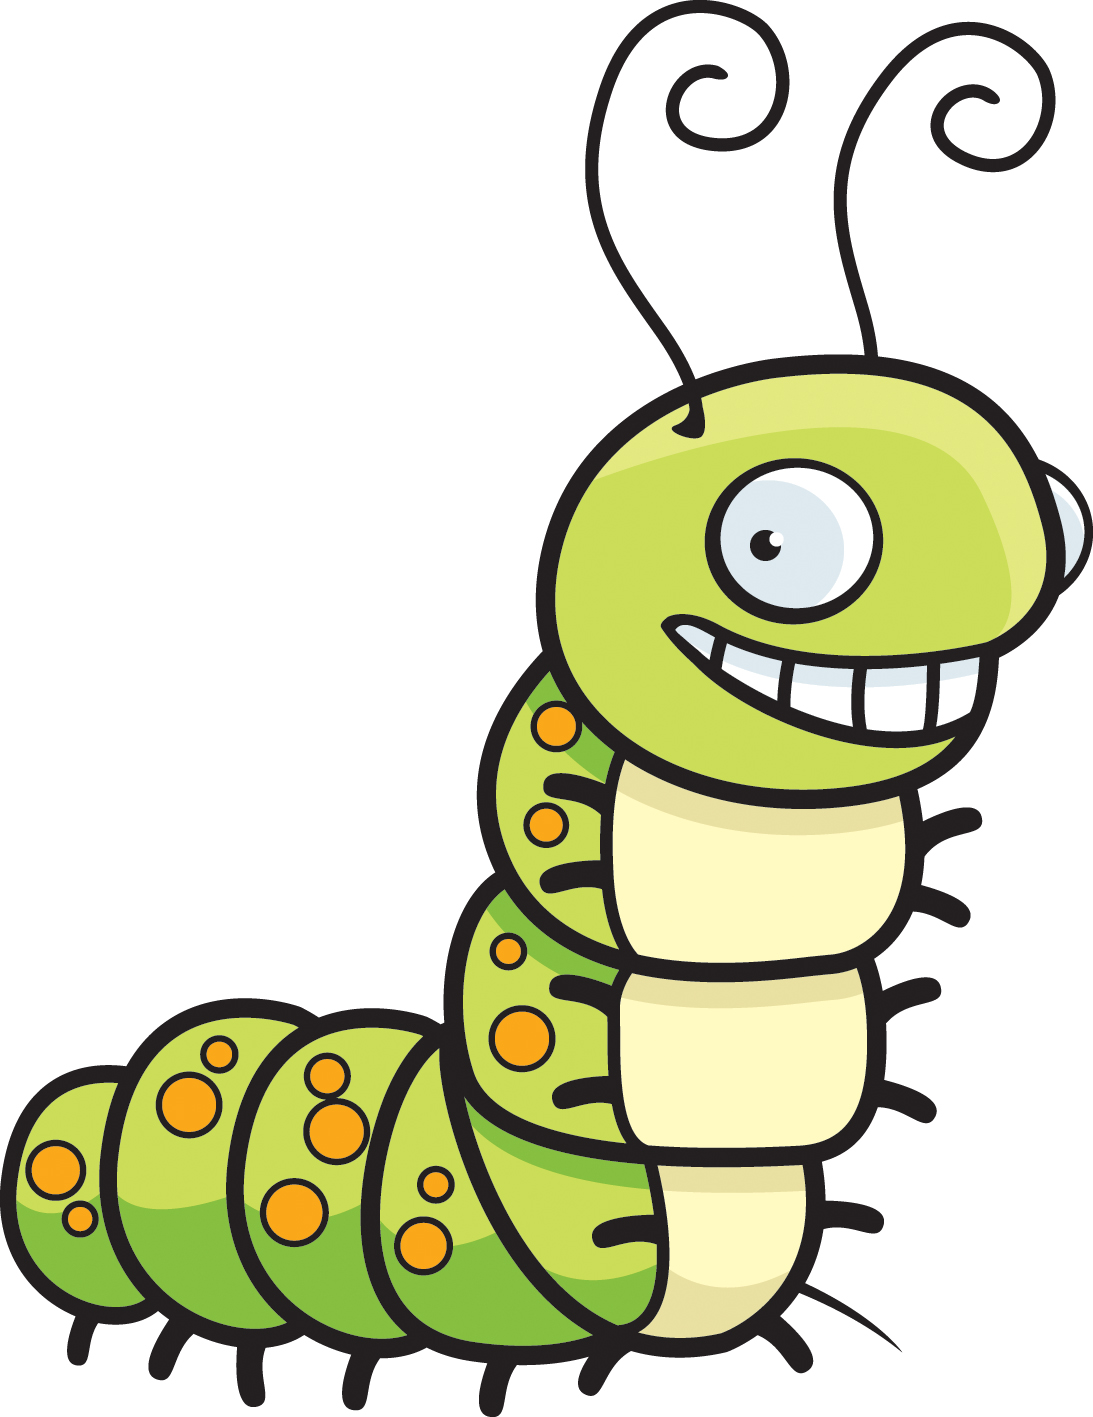 Caterpillar clipart. Depositphotos typegoodies me clip